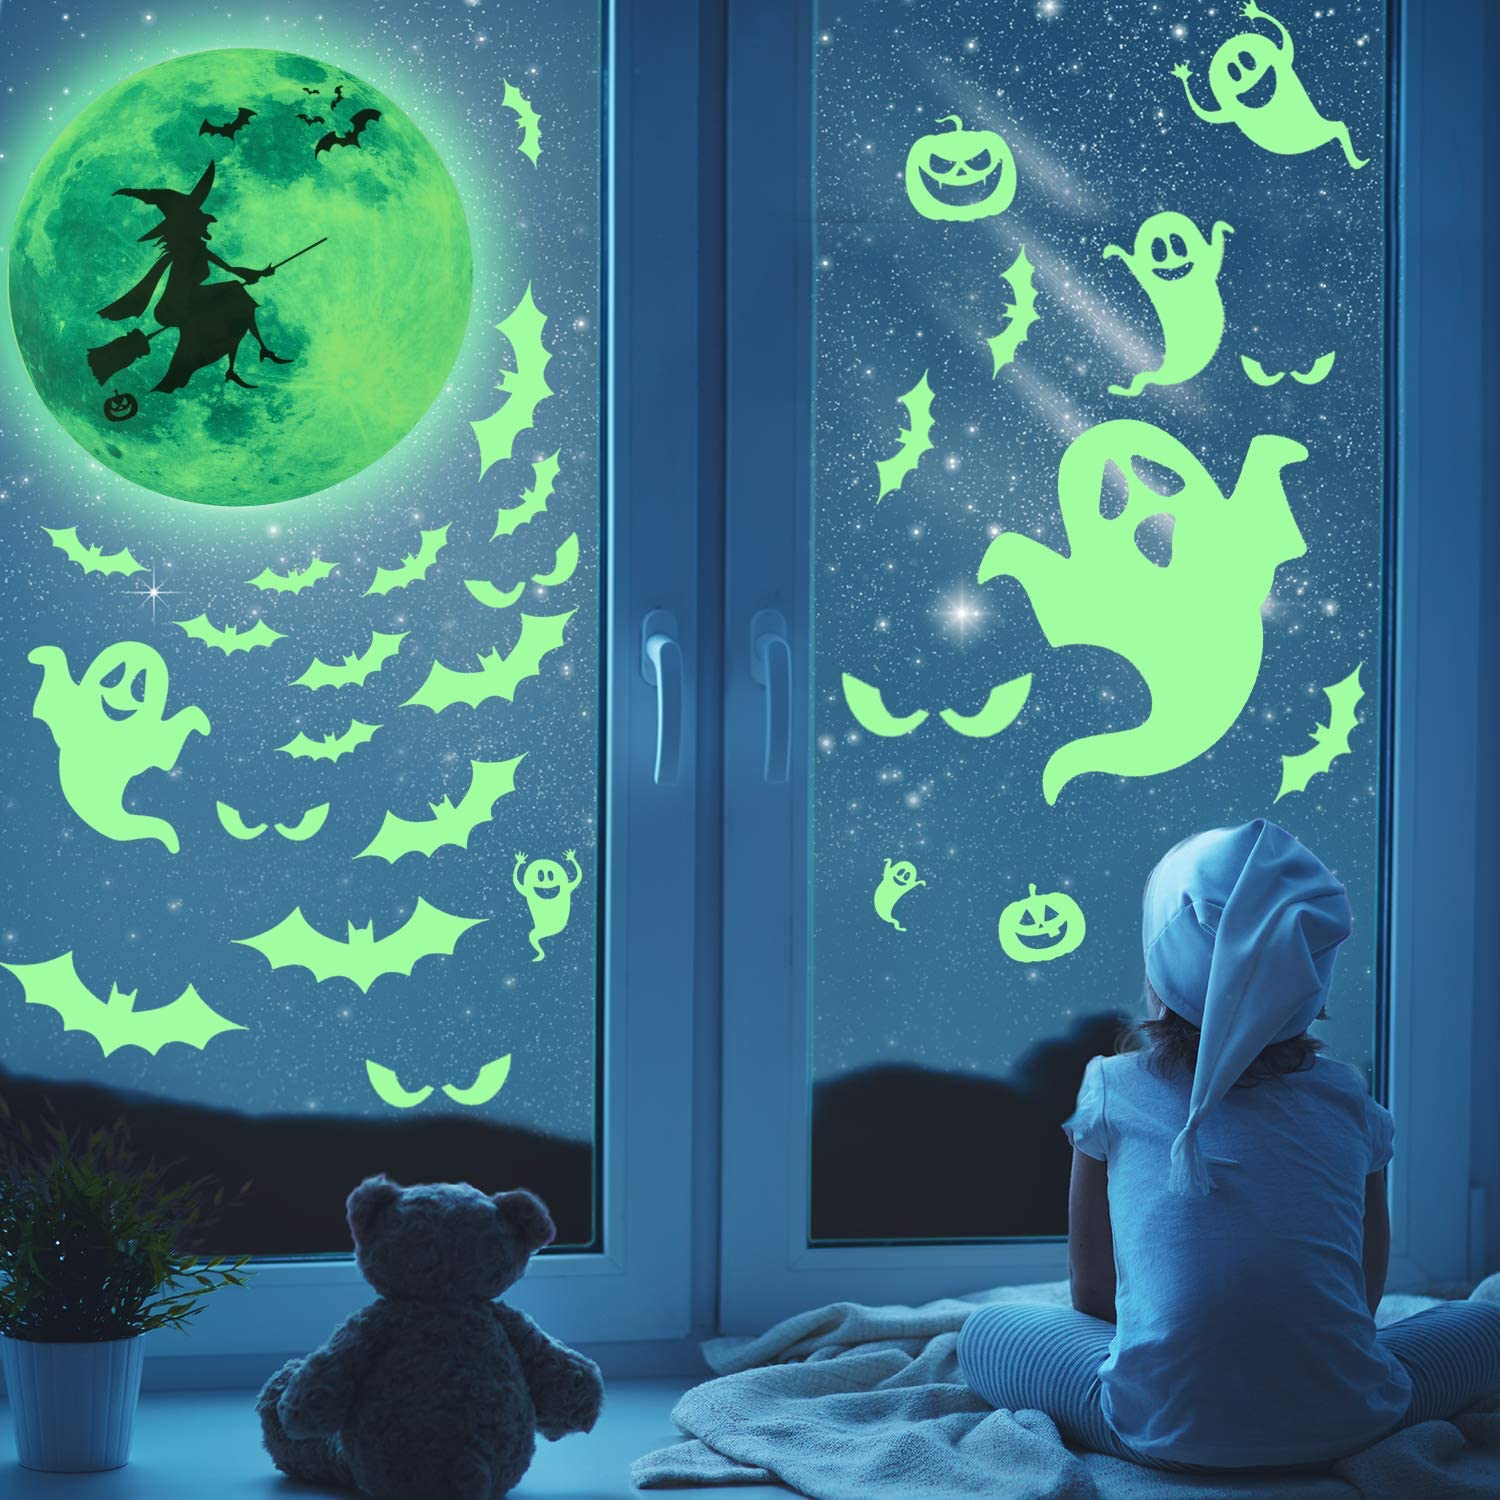 53 Pieces Halloween Glow Stickers Glow Wall Decorations 5 Sheets Luminous Halloween Stickers for Wall Door Windows Decoration